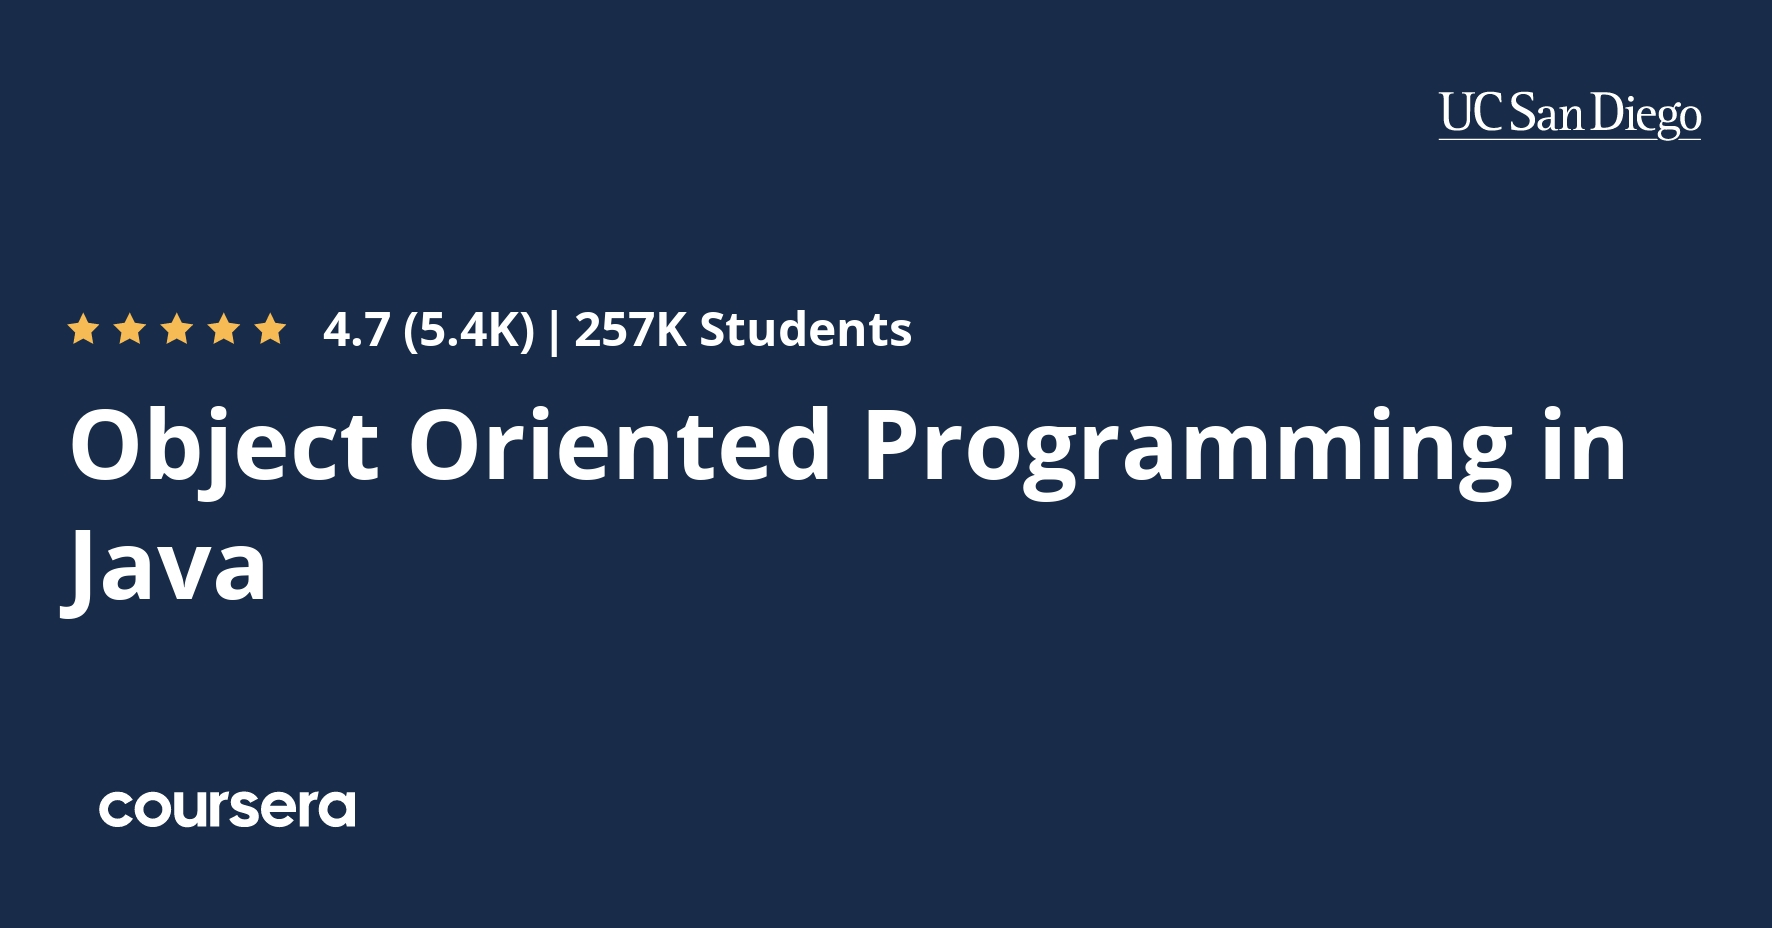 Object Oriented Programming In Java Coursera